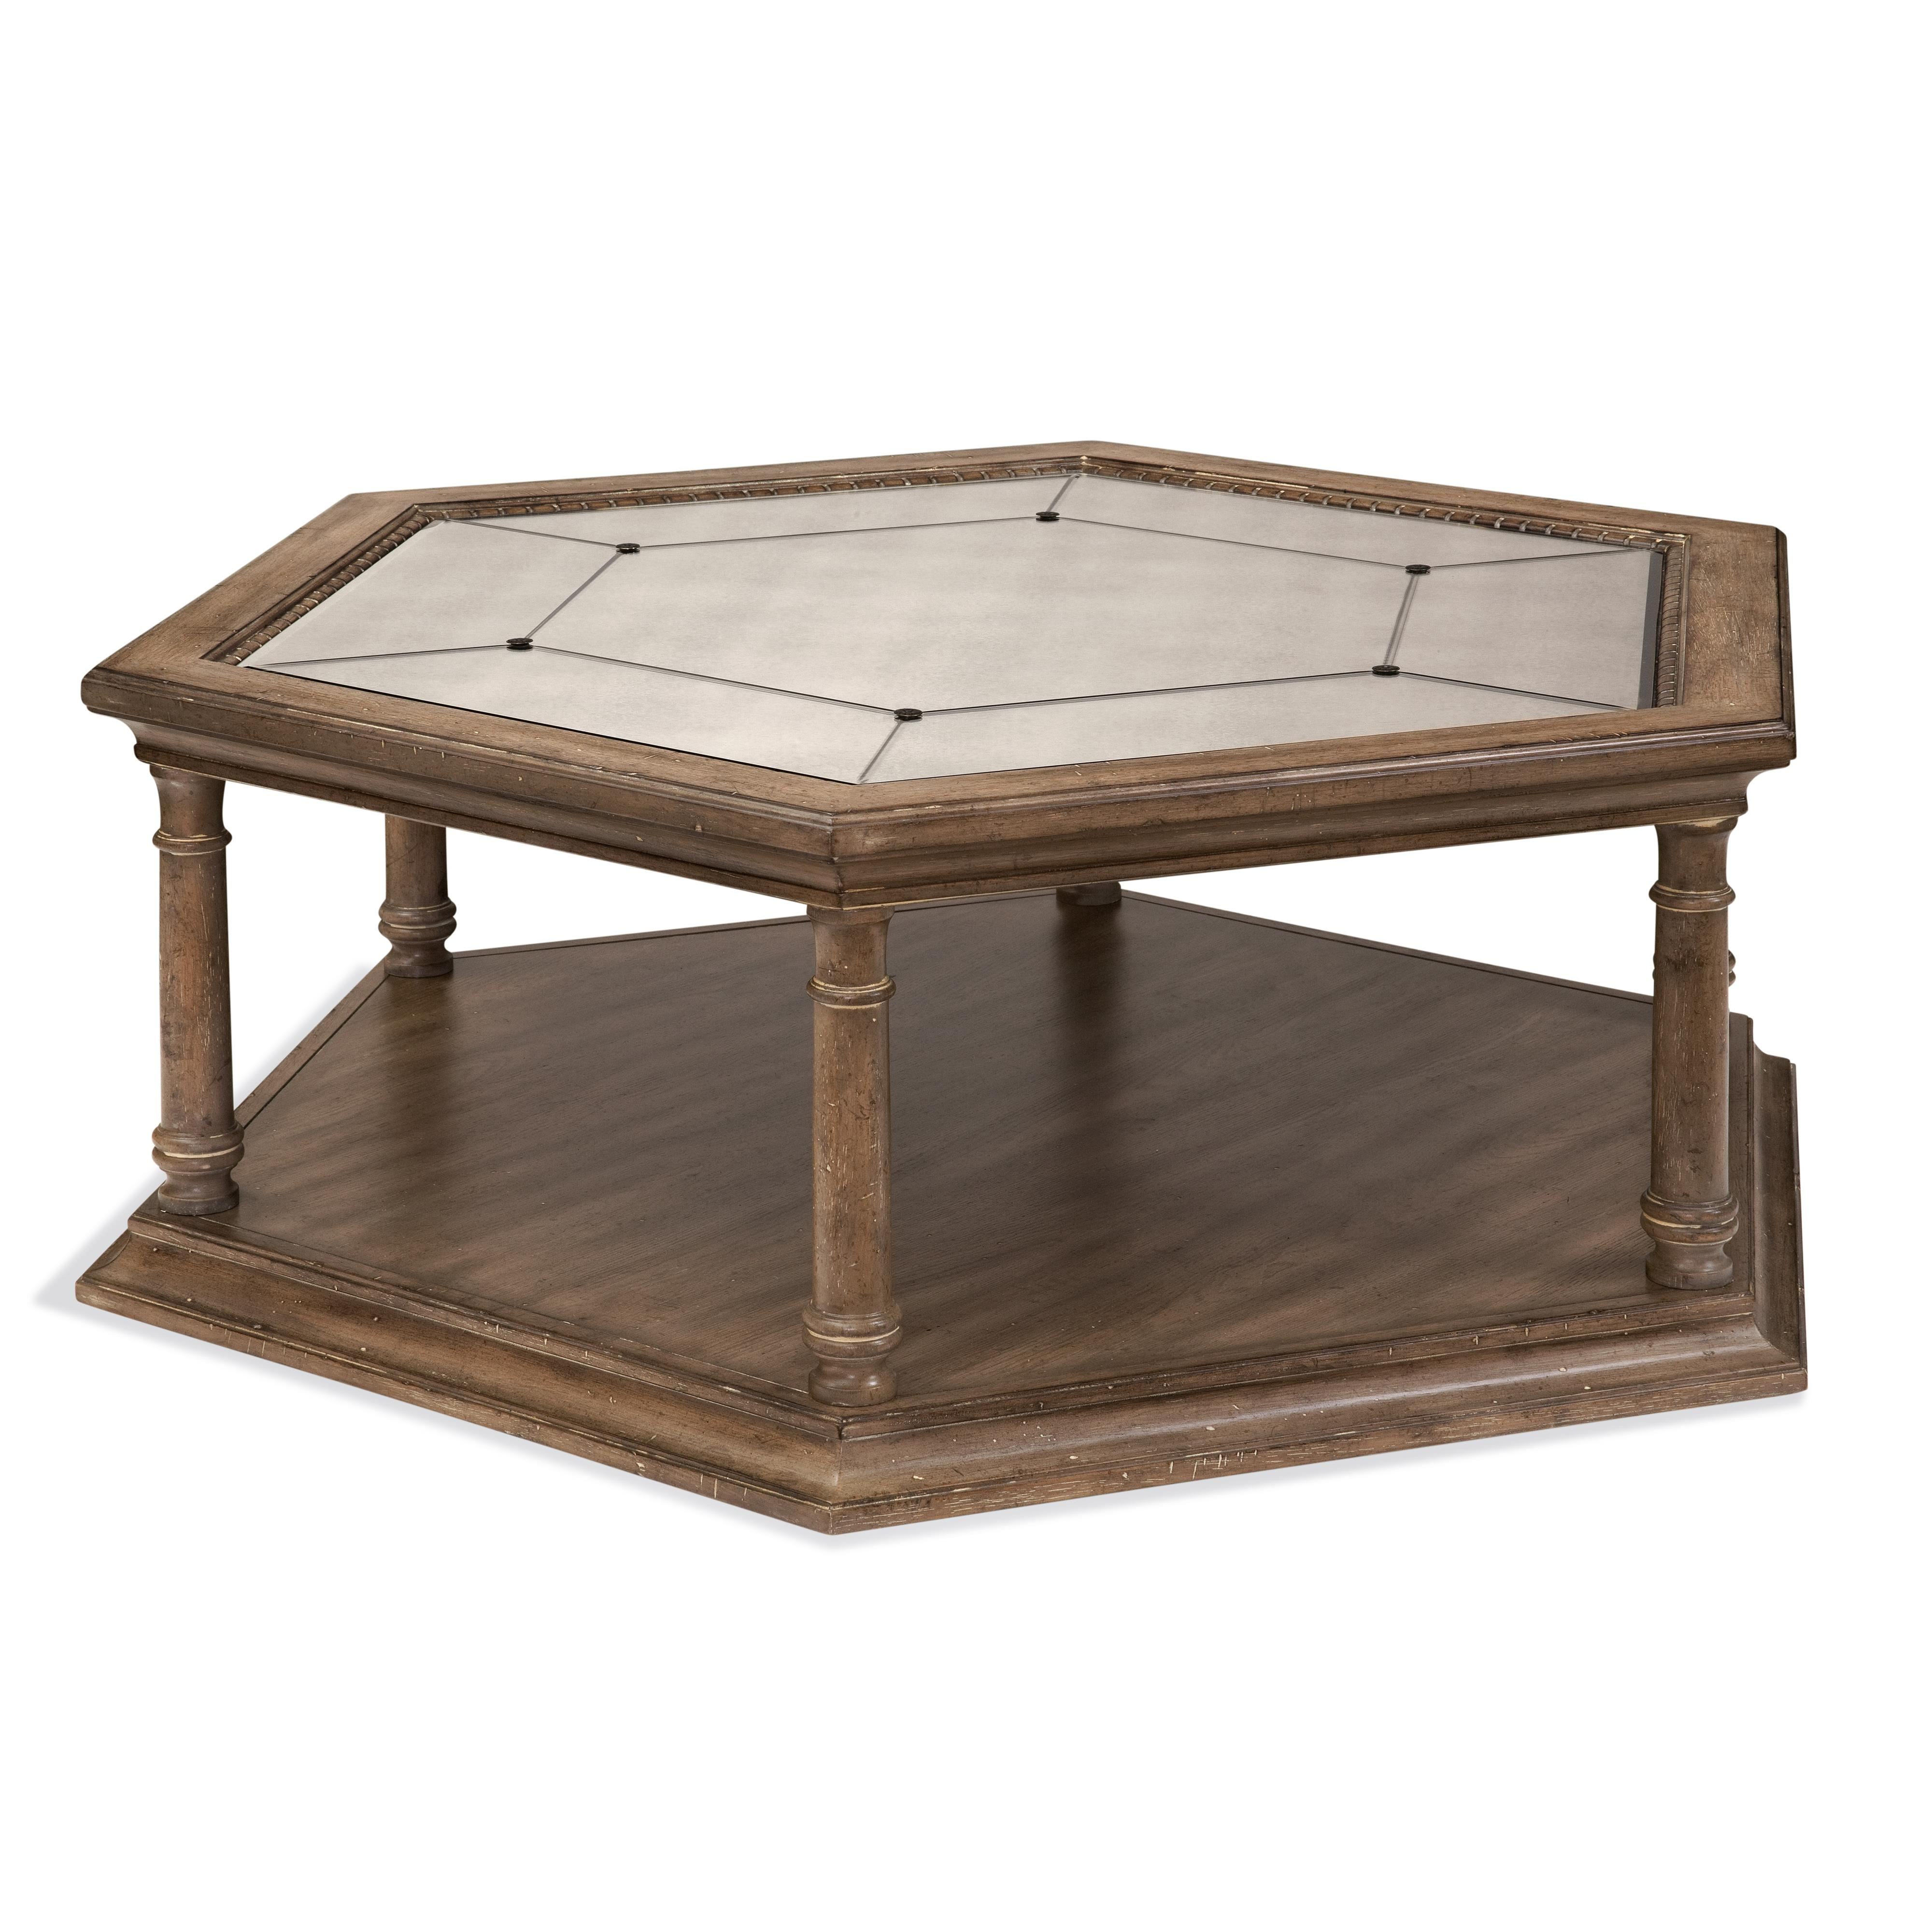 Belgian Luxe Galliano Octagon Cocktail Table by Bassett Mirror at Alison Craig Home Furnishings